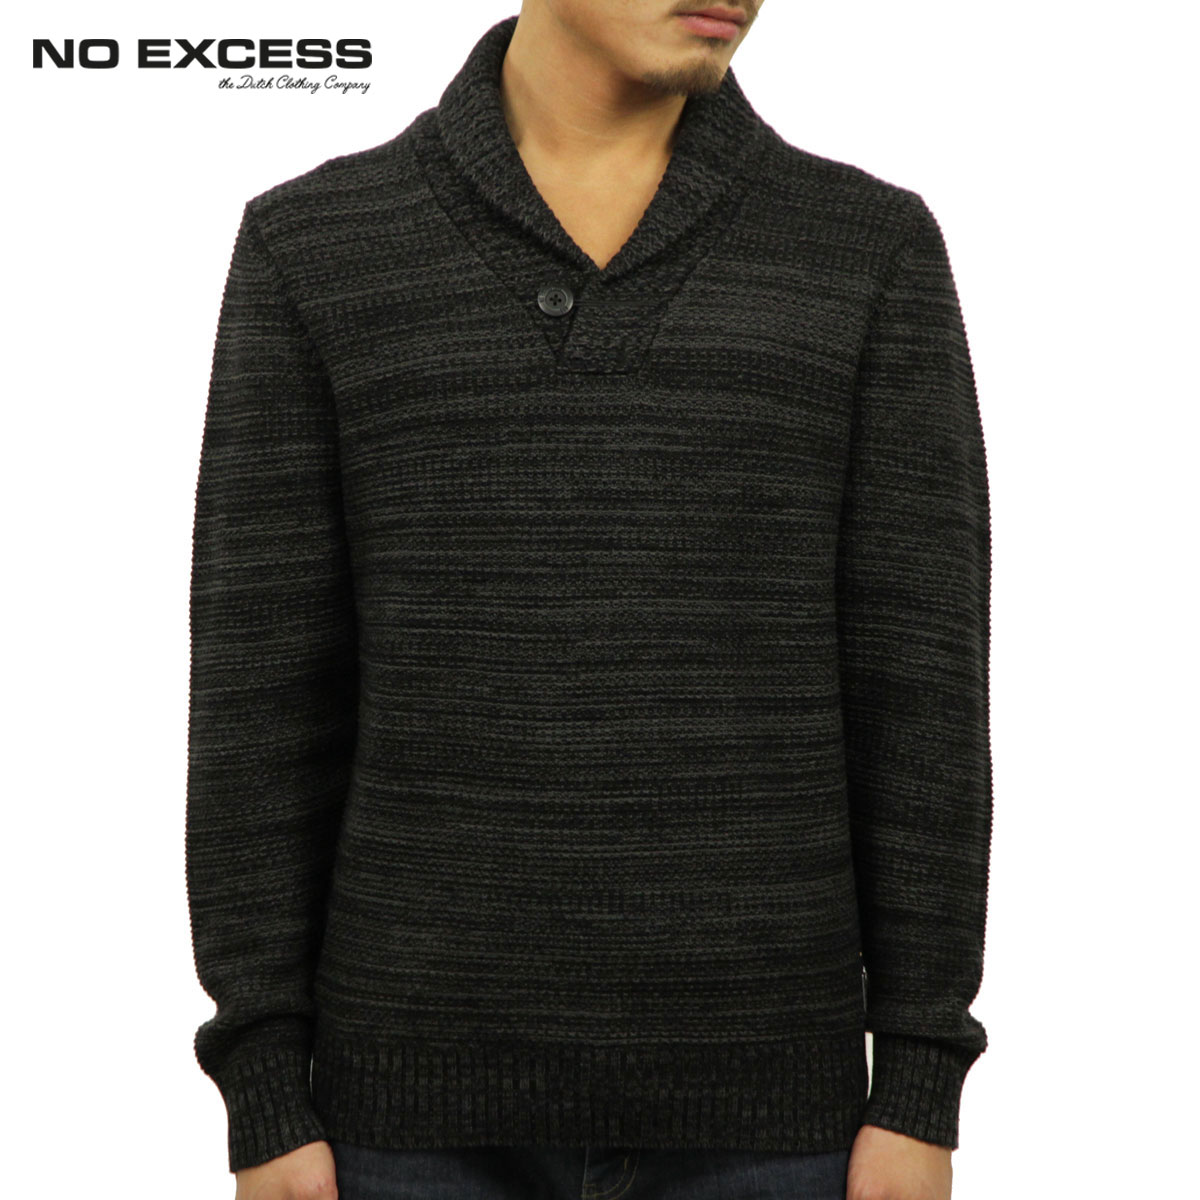 ノーエクセス NO EXCESS 正規品 メンズ セーター Big Shawl Collar Pullover Sweater230913020 D00S20